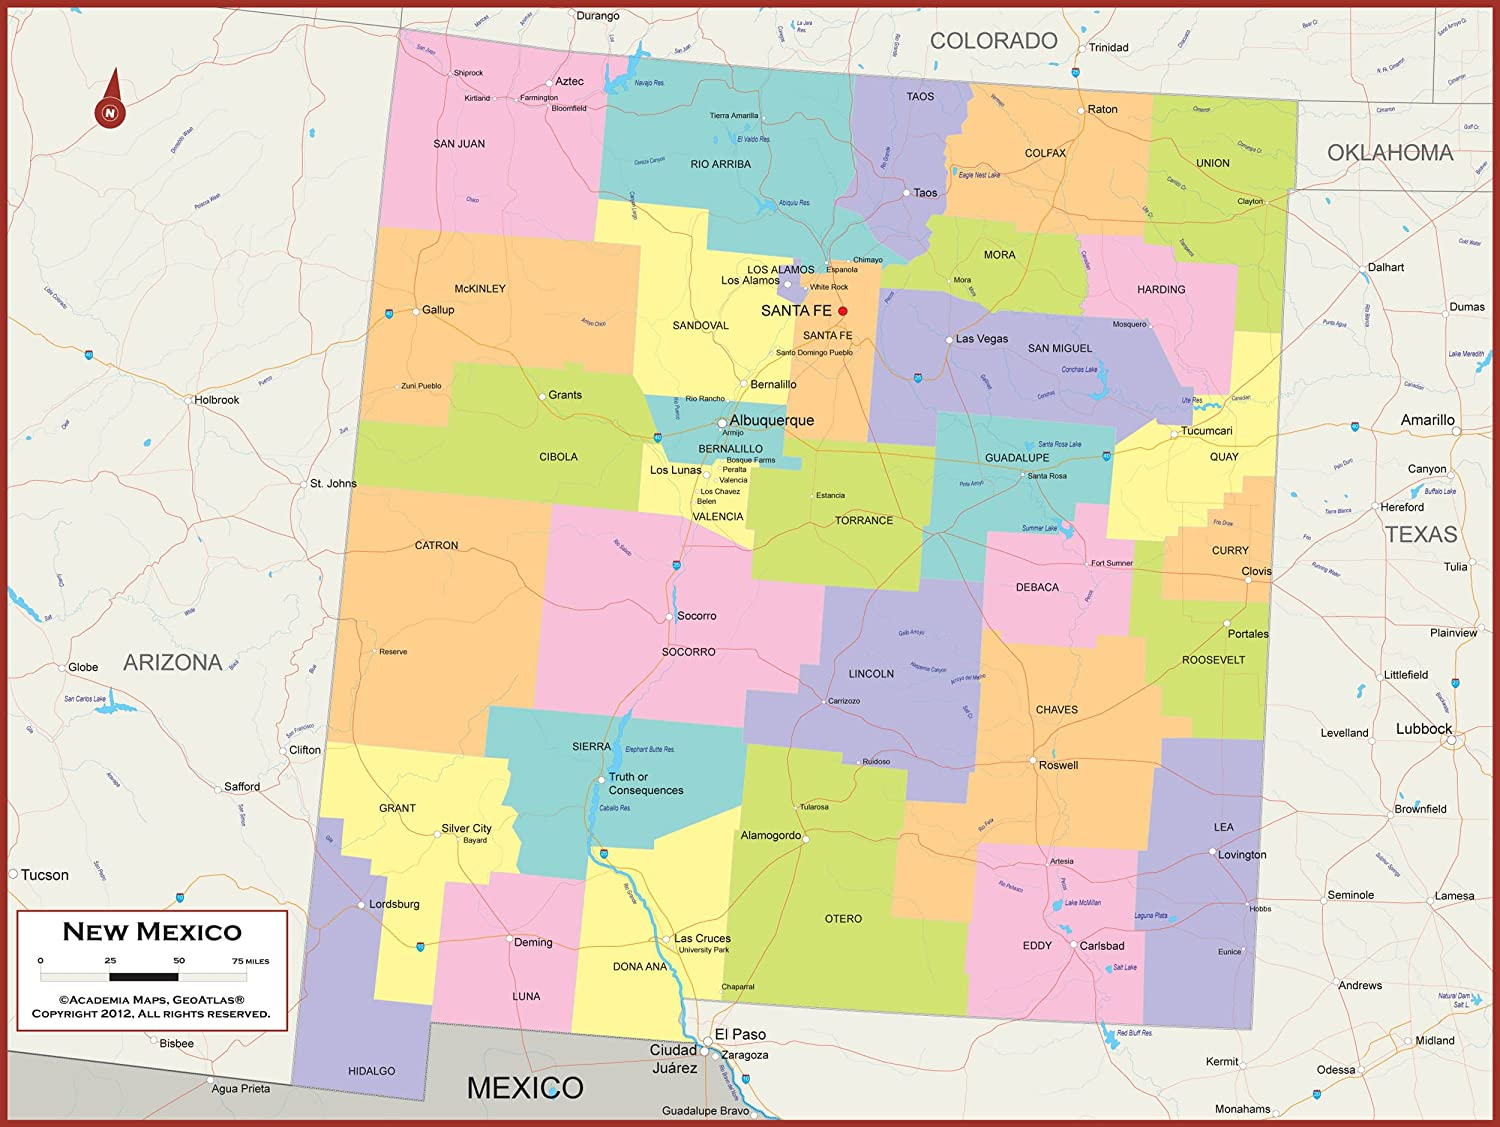 Amazon.com : 54 x 41 Large New Mexico State Wall Map Poster with ...